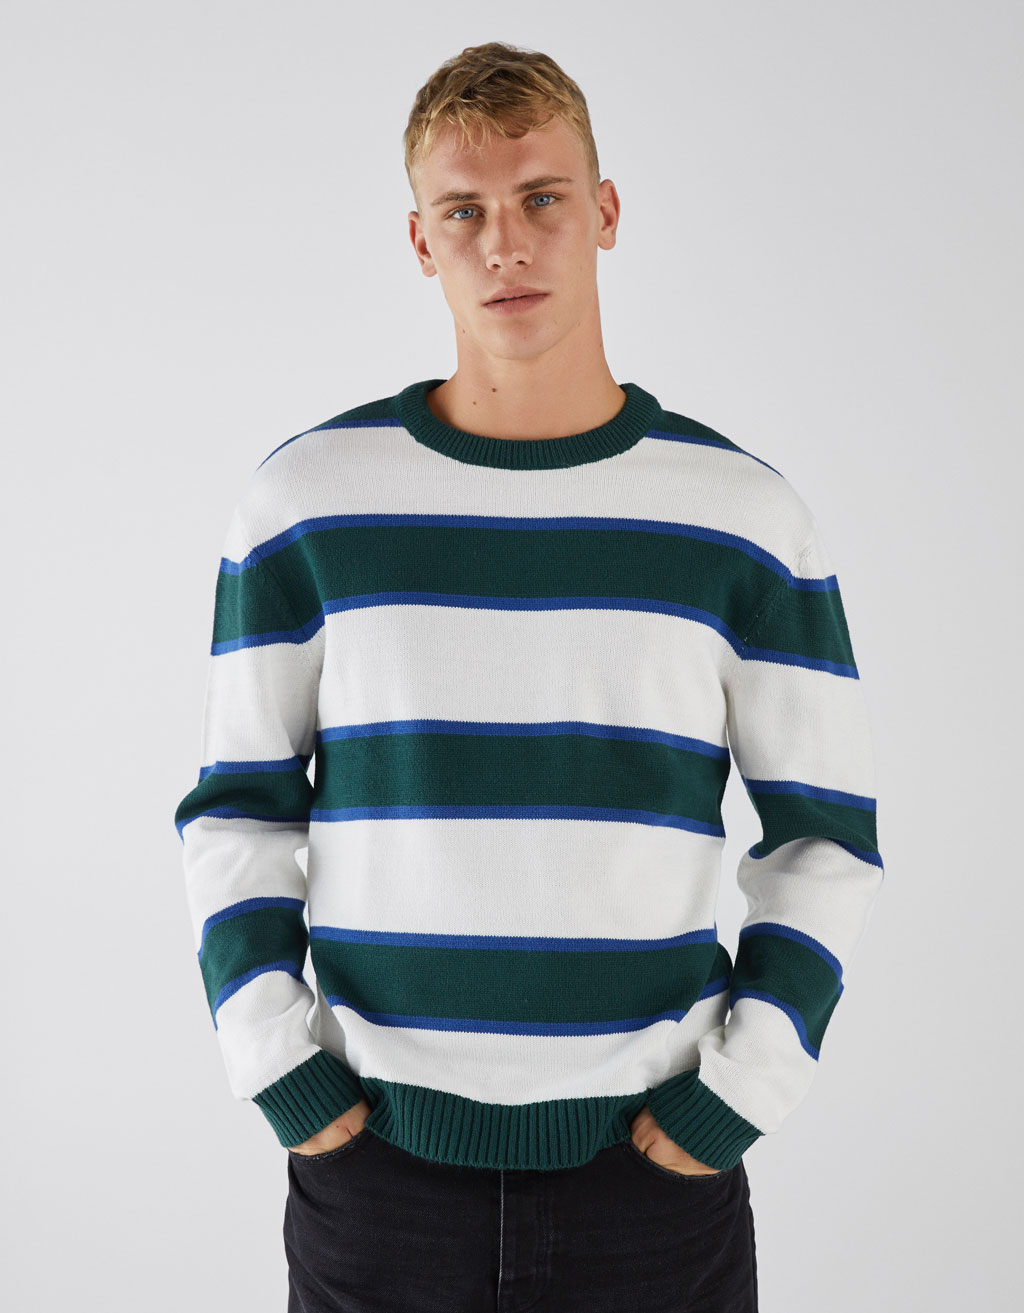 Striped retro sweater